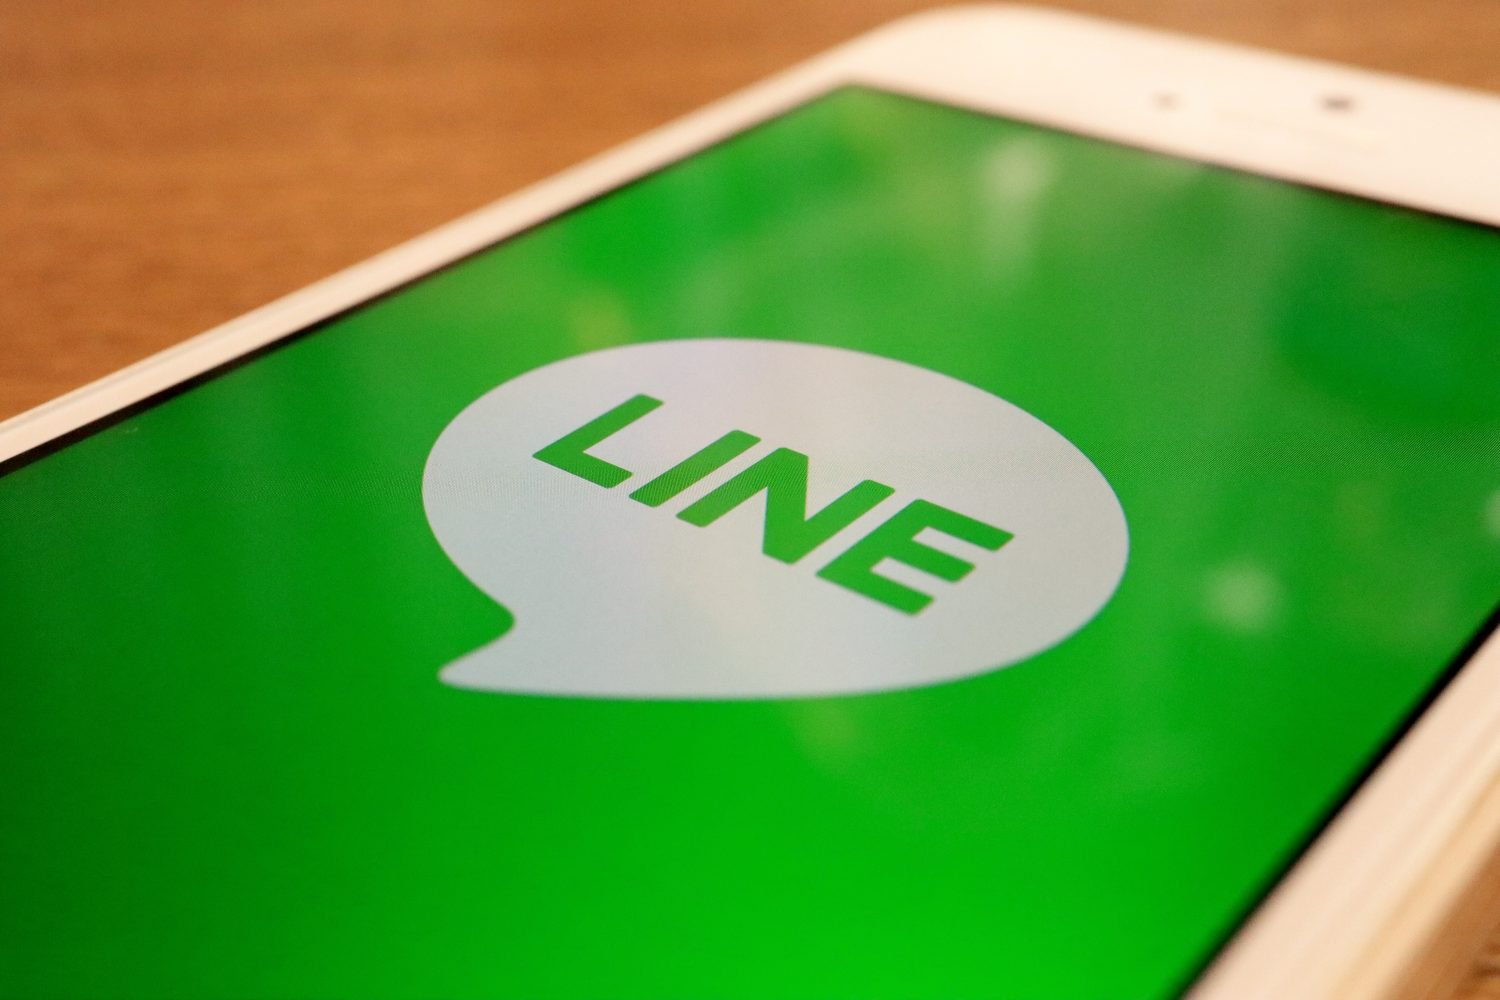 Japan's Messaging Giant LINE Sets Up $10 Million Hong Kong Blockchain Venture Fund